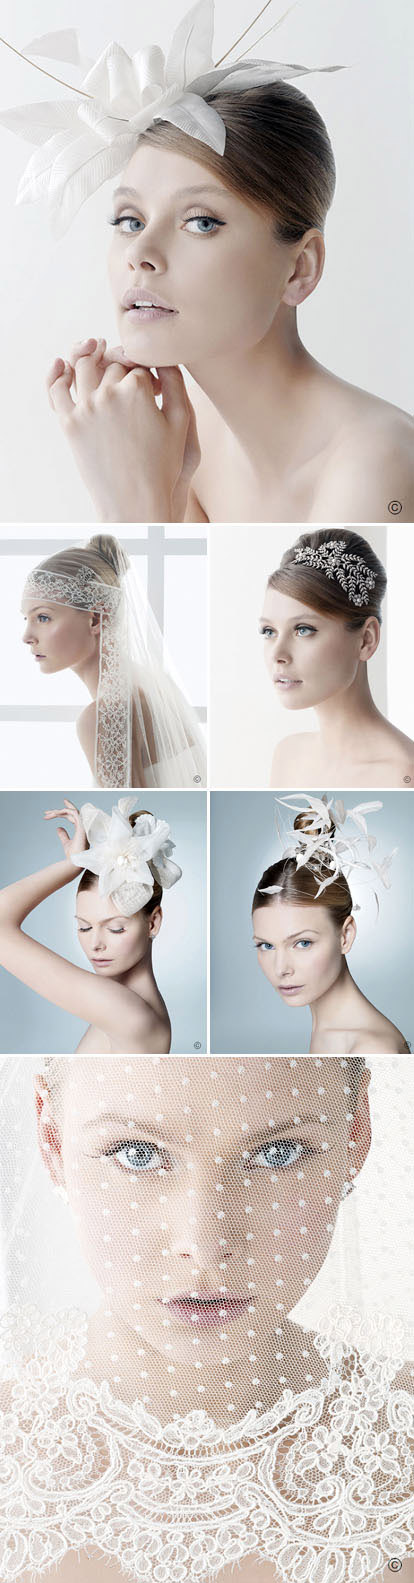 bridal veils and headpieces from Rosa Clara